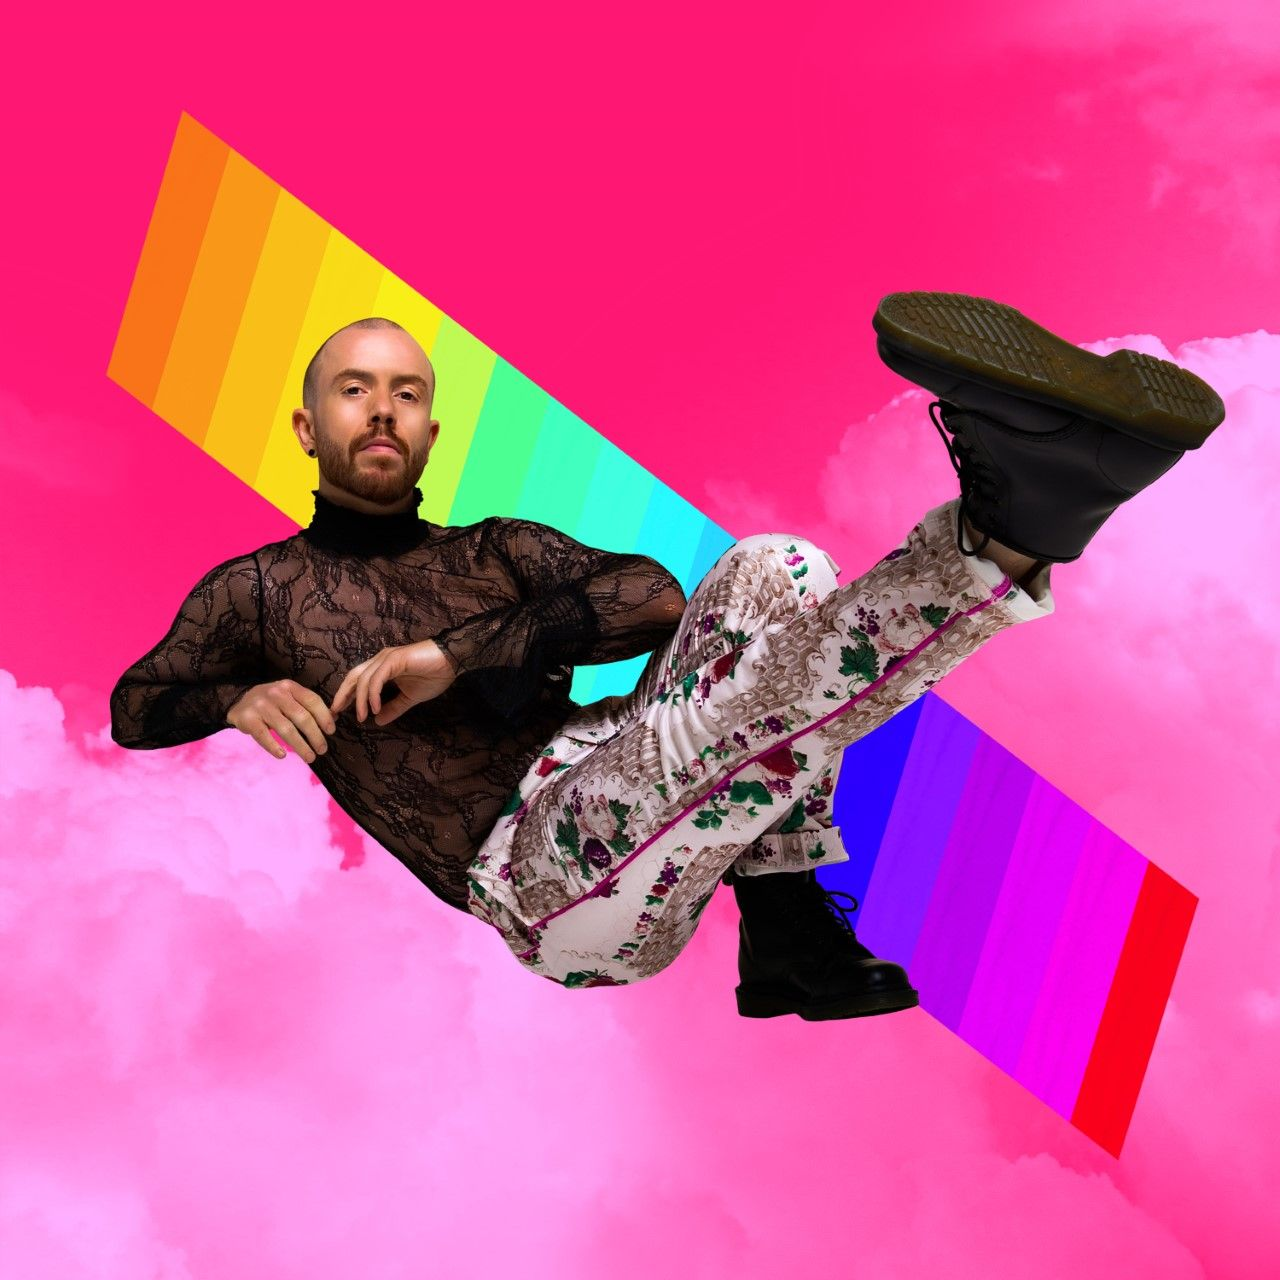 PROUD: The launch of Kane\'s latest album coincides with the start of Belfast Pride week